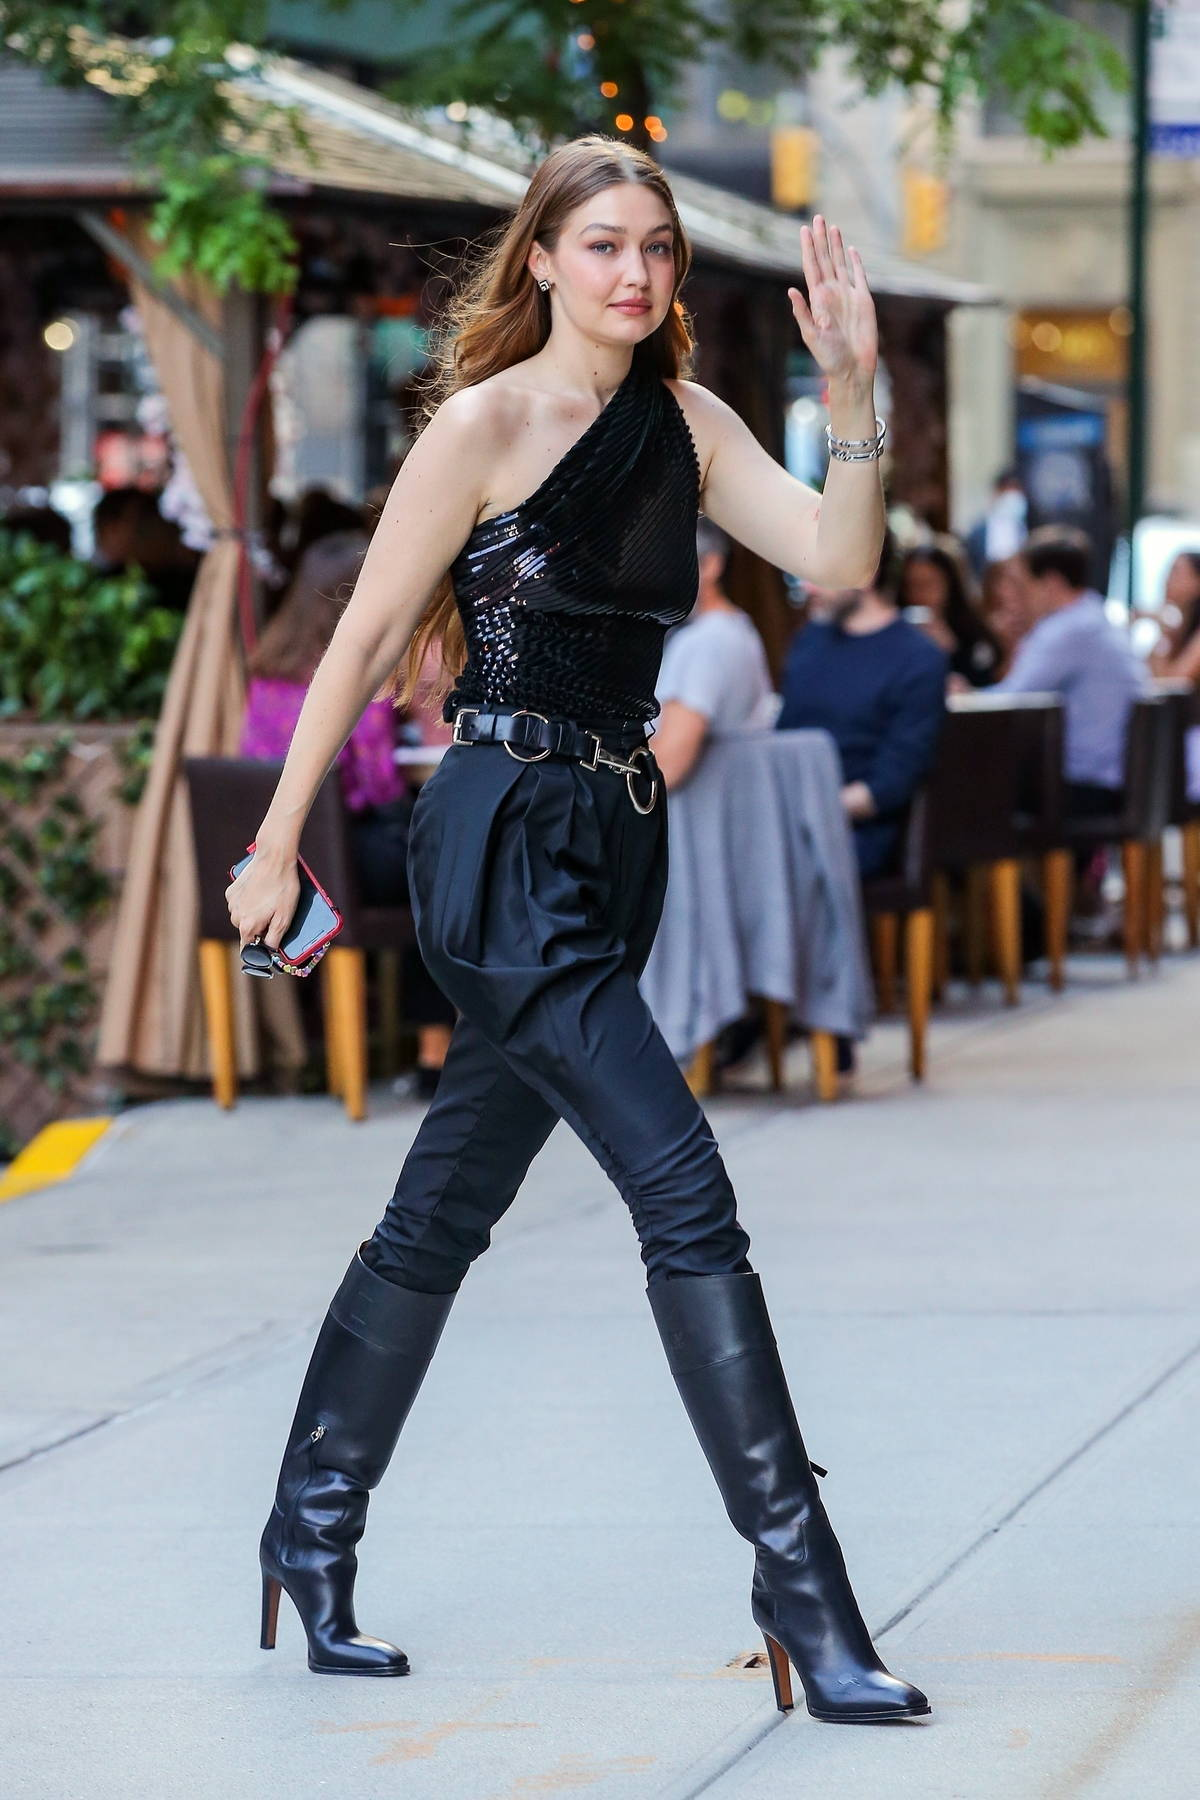 Gigi Hadid looks stunning in all-black while heading out for a photoshoot in New York City